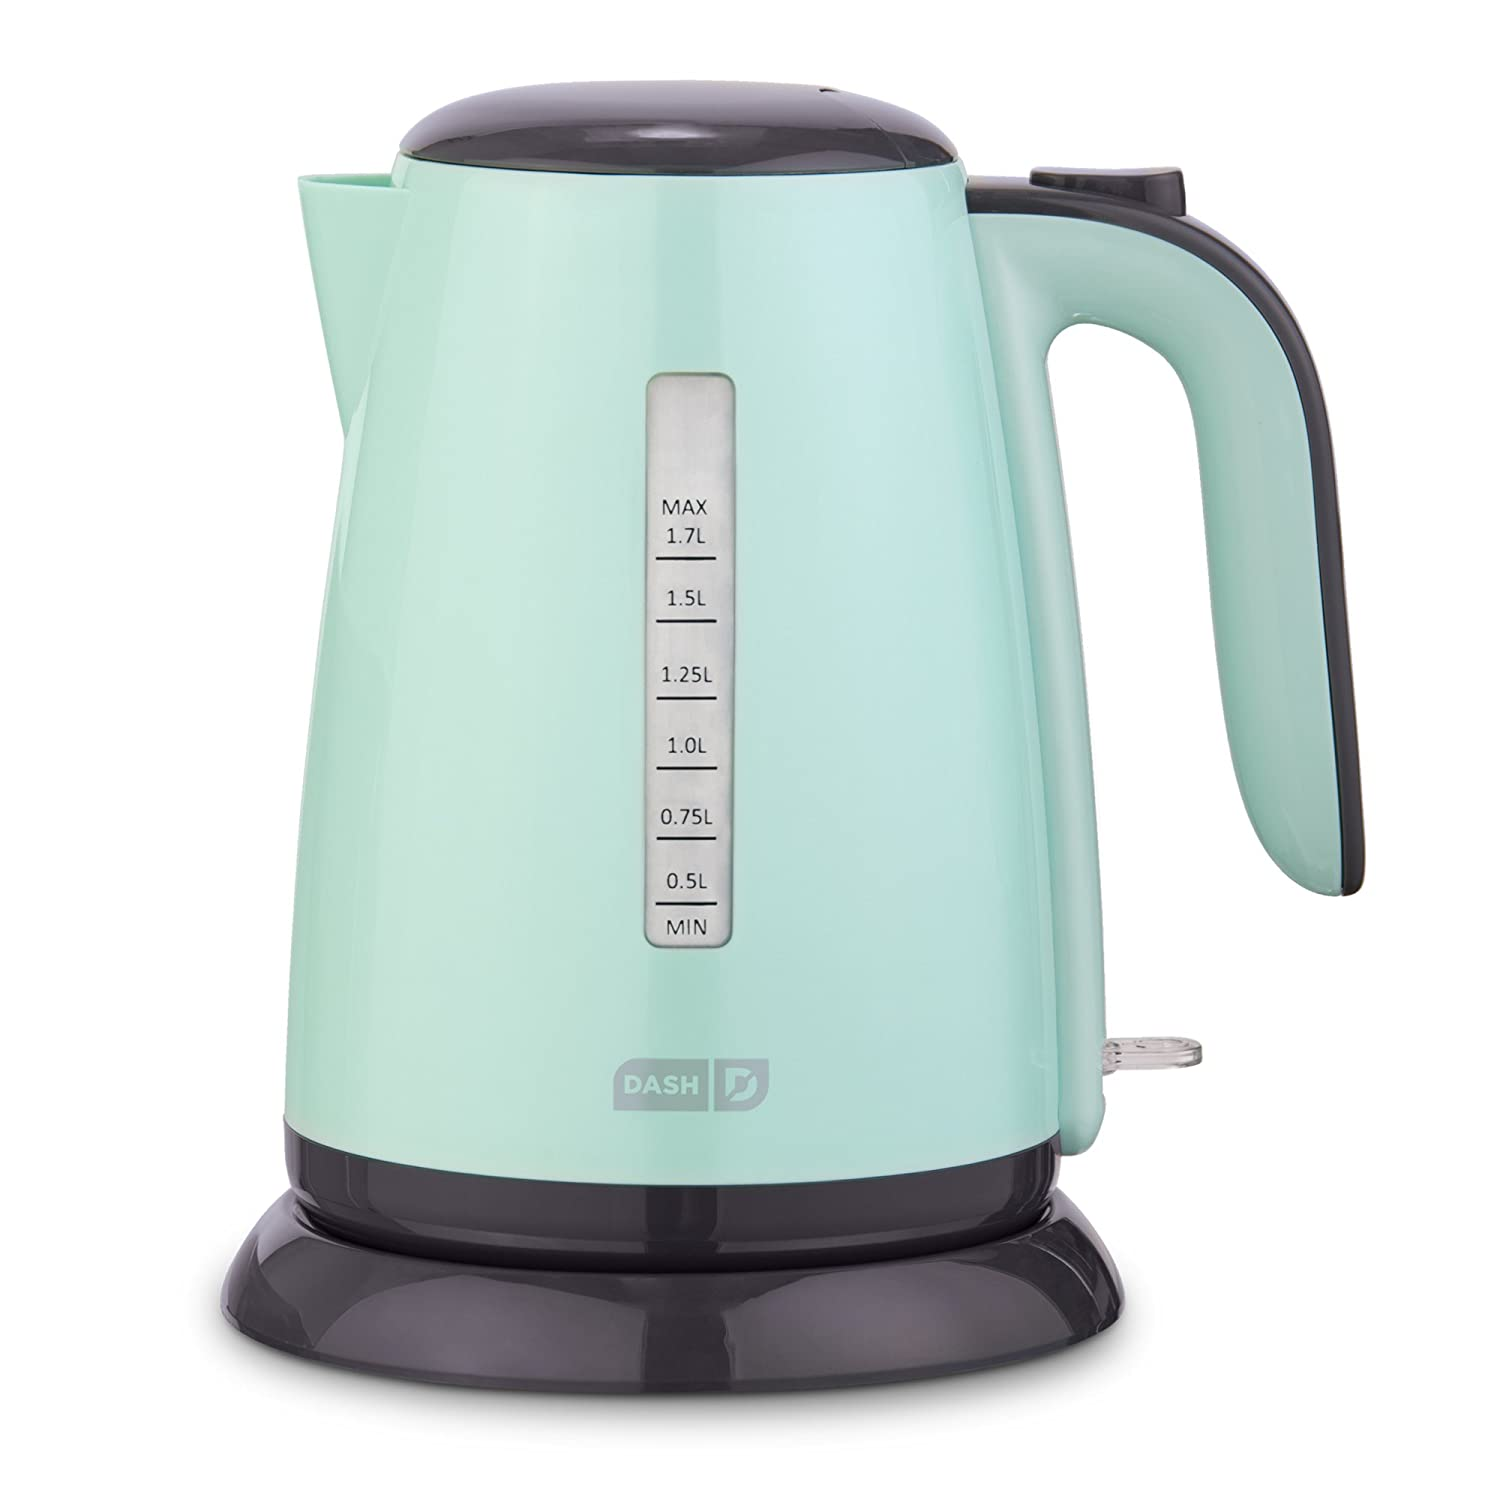 Dash DEZK003AQ Easy Electric Kettle + Water Heater with Rapid Boil, Cool Touch Handle, Cordless Carafe + Auto Shut off for Coffee, Tea, Espresso & More 57 oz. / 1.7L Aqua